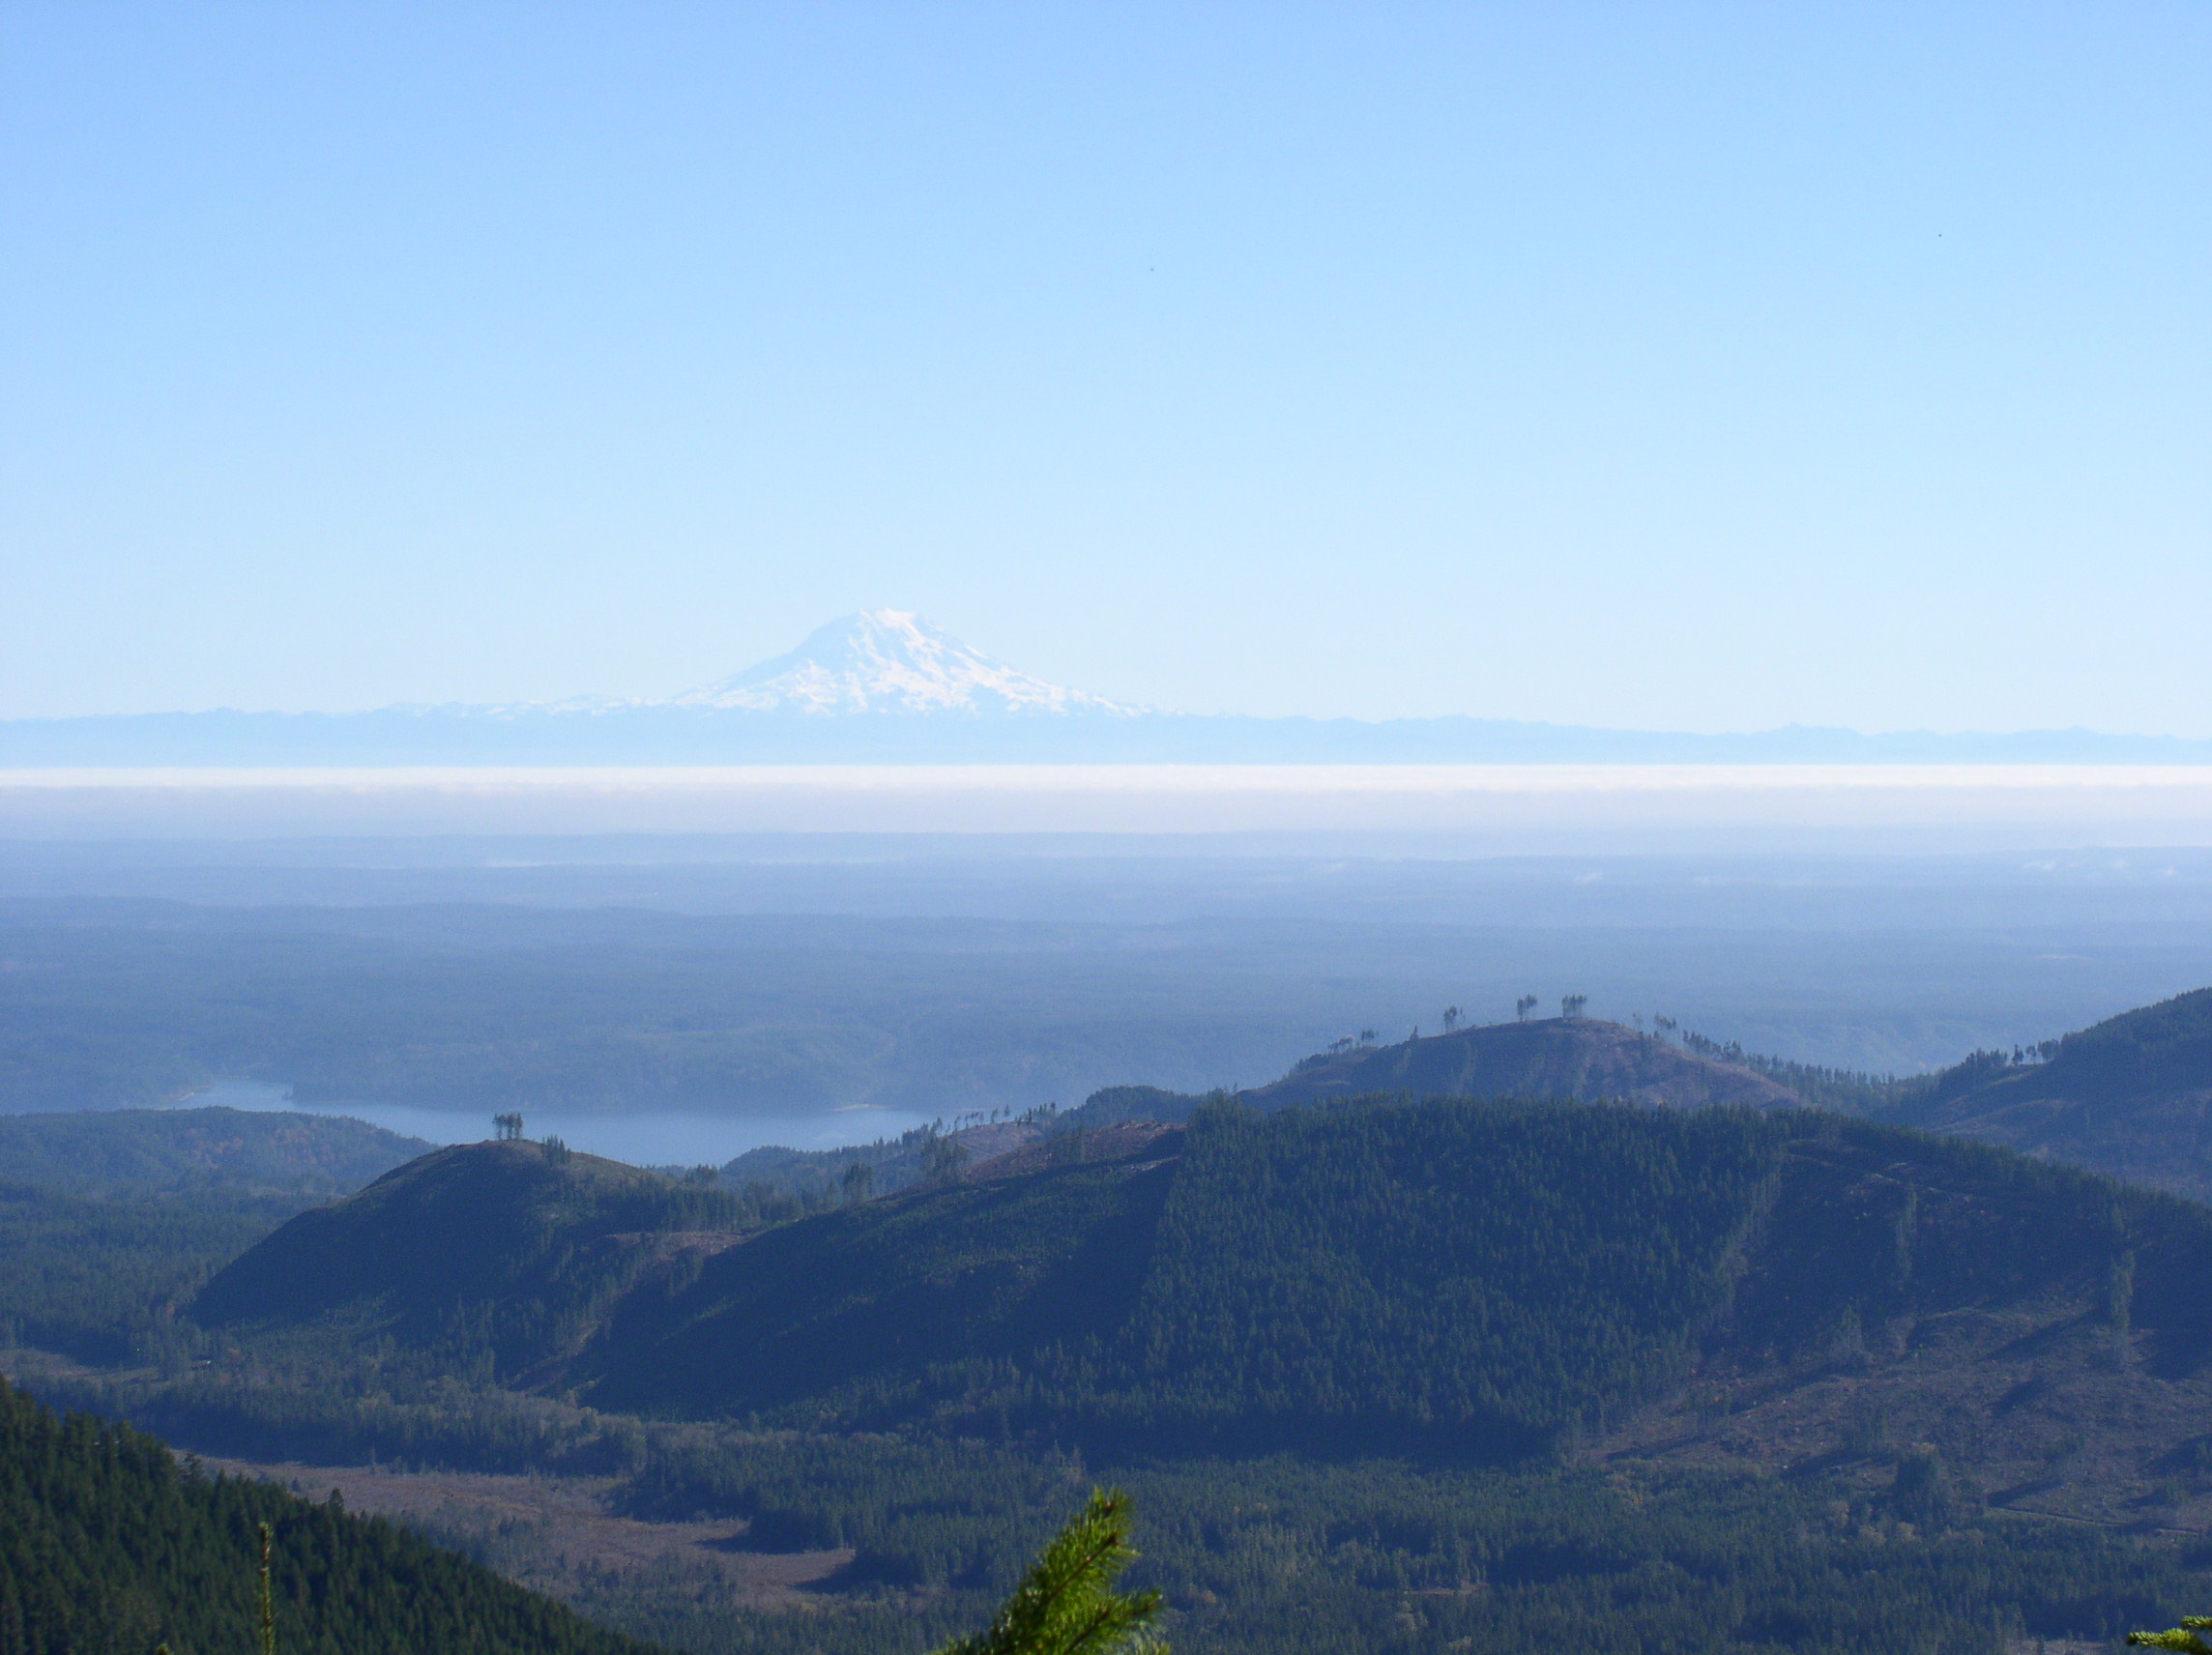 Mt. Rainier in the distance.